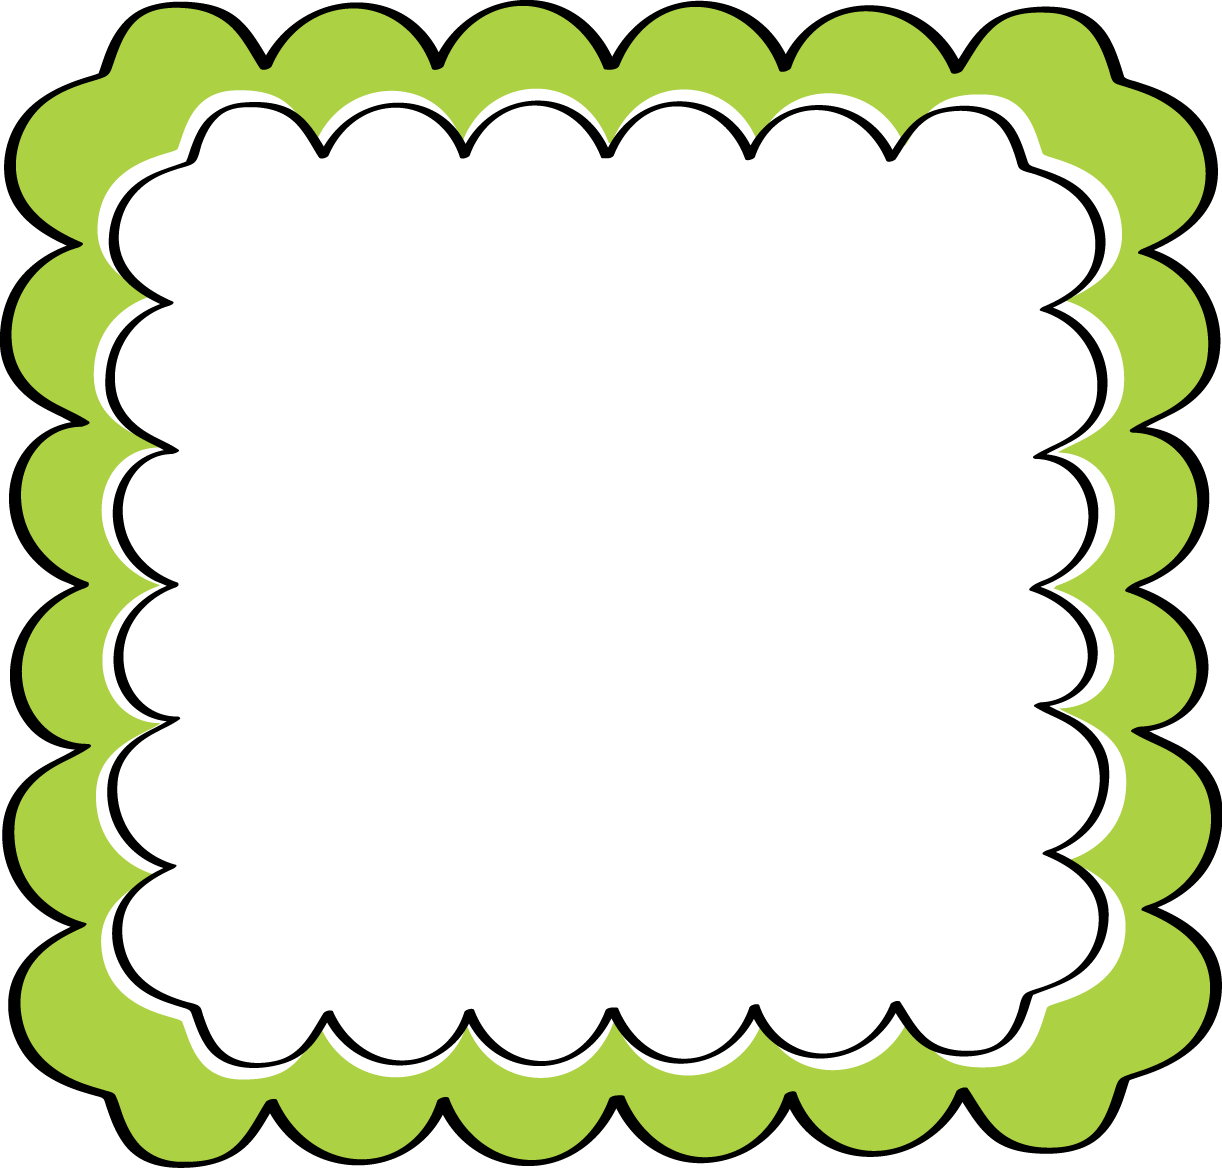 school theme border clipart green scalloped frame free clip art rh pinterest com free clip art glasses frames free clipart frame borders